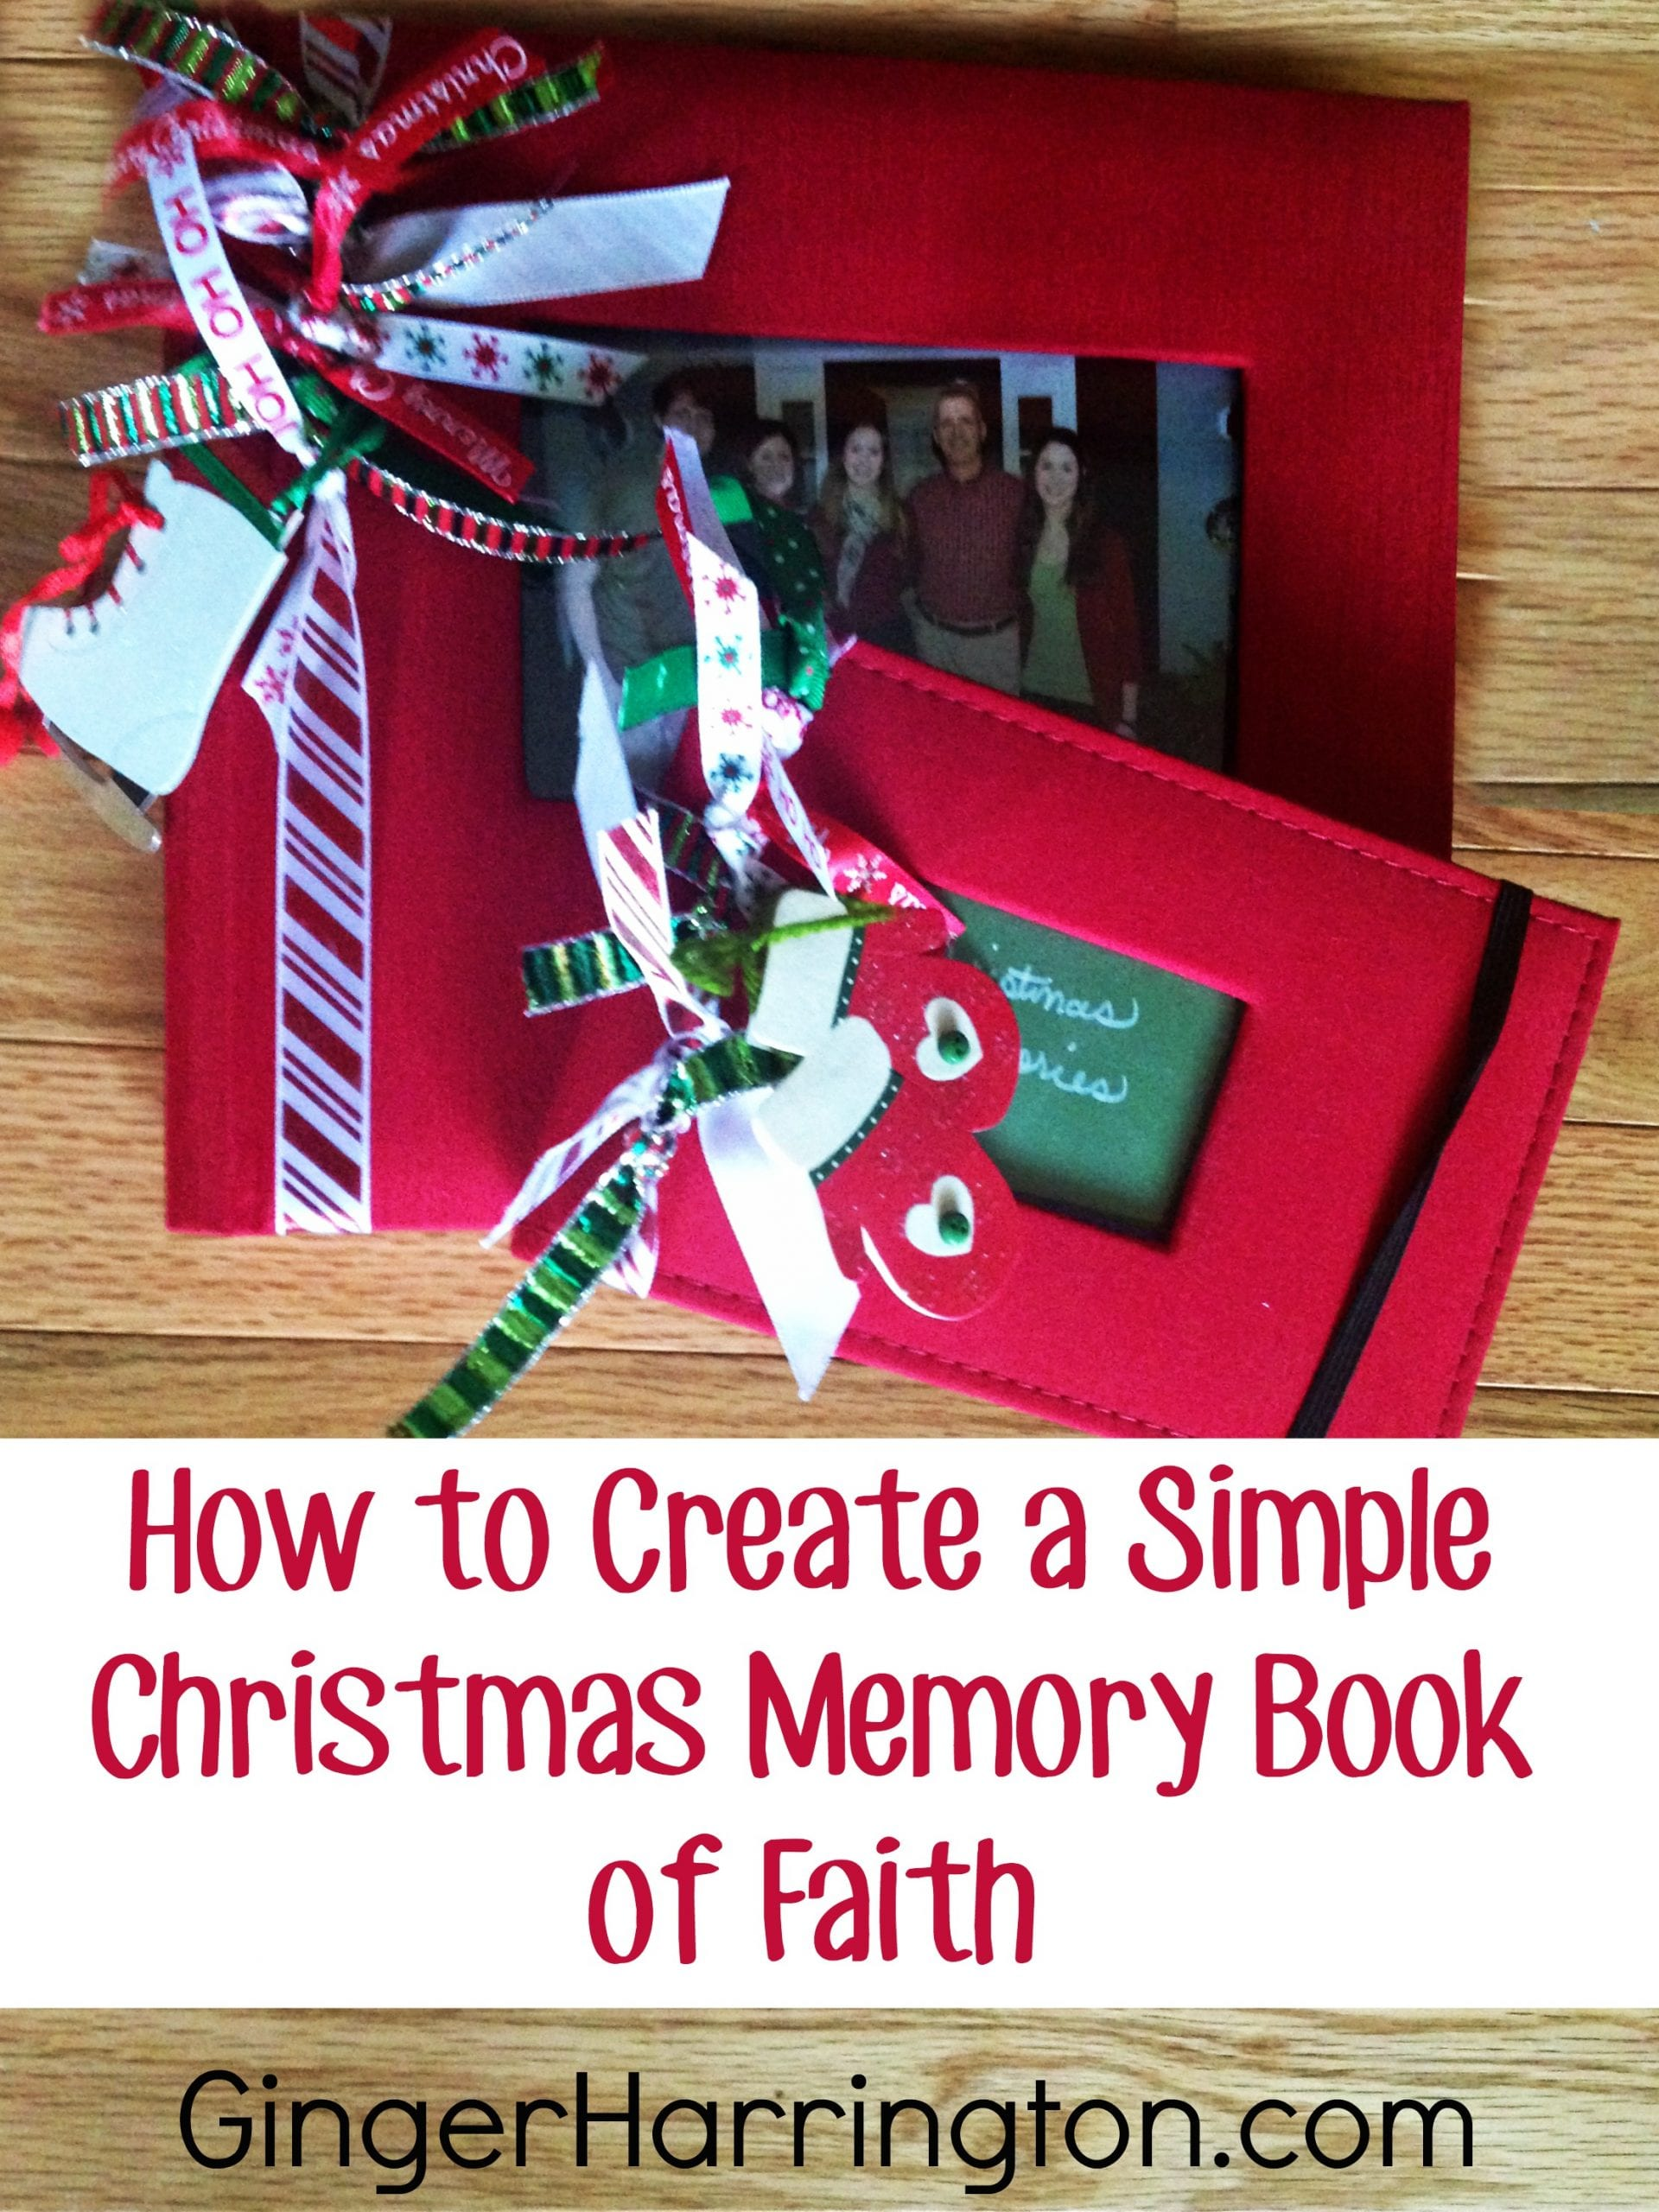 How to Create a Simple Christmas Memory Book of Faith